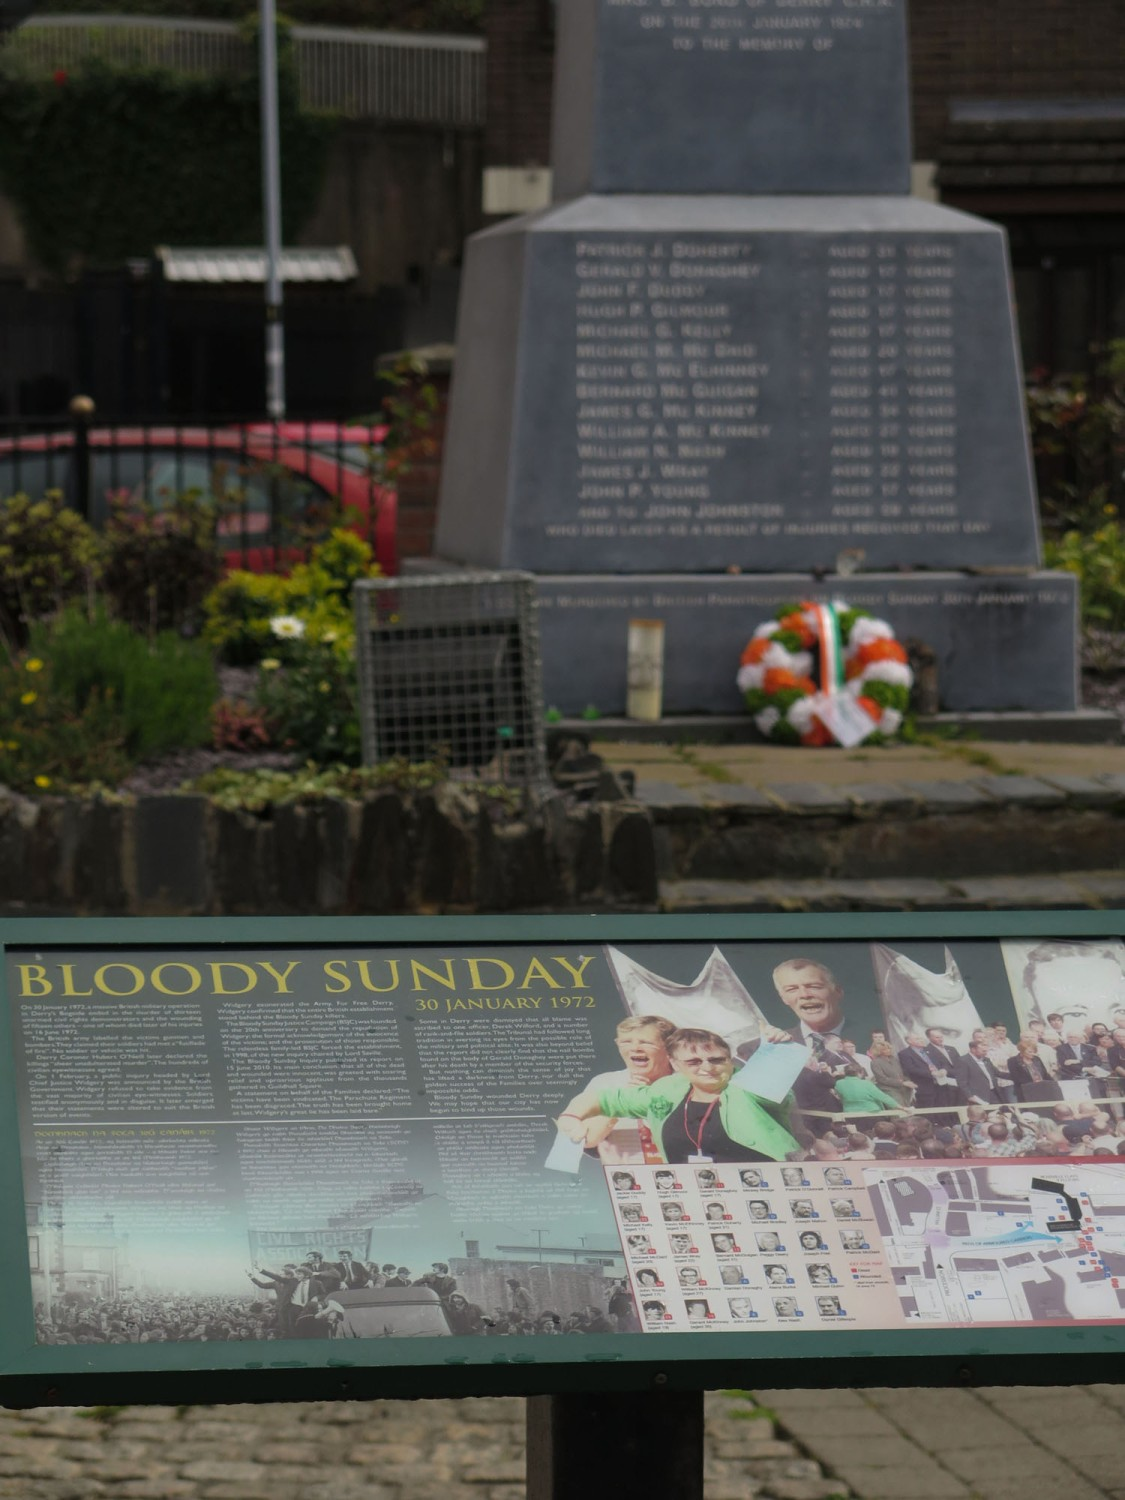 Northern-Ireland-Derry-Londonderry-Bloody-Sunday-Monument